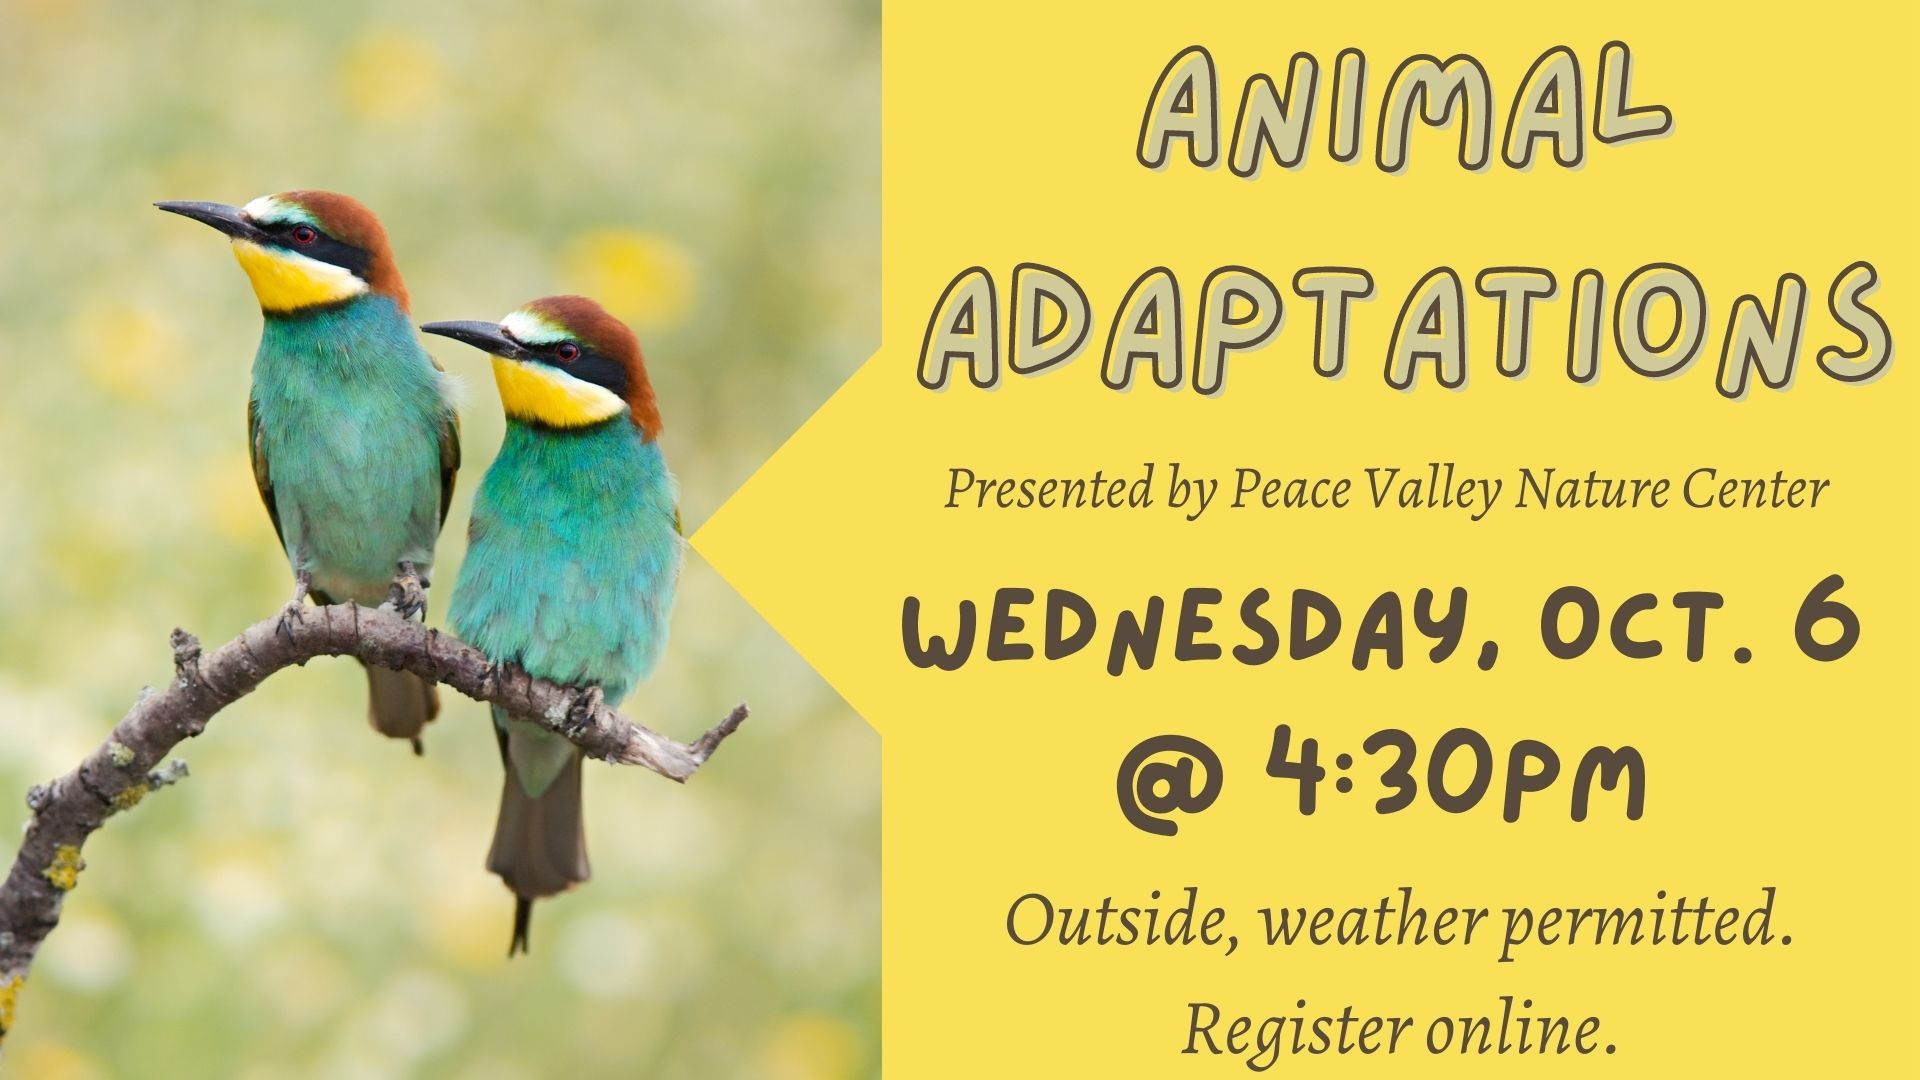 Peace Valley Nature Center: Animal Adaptations